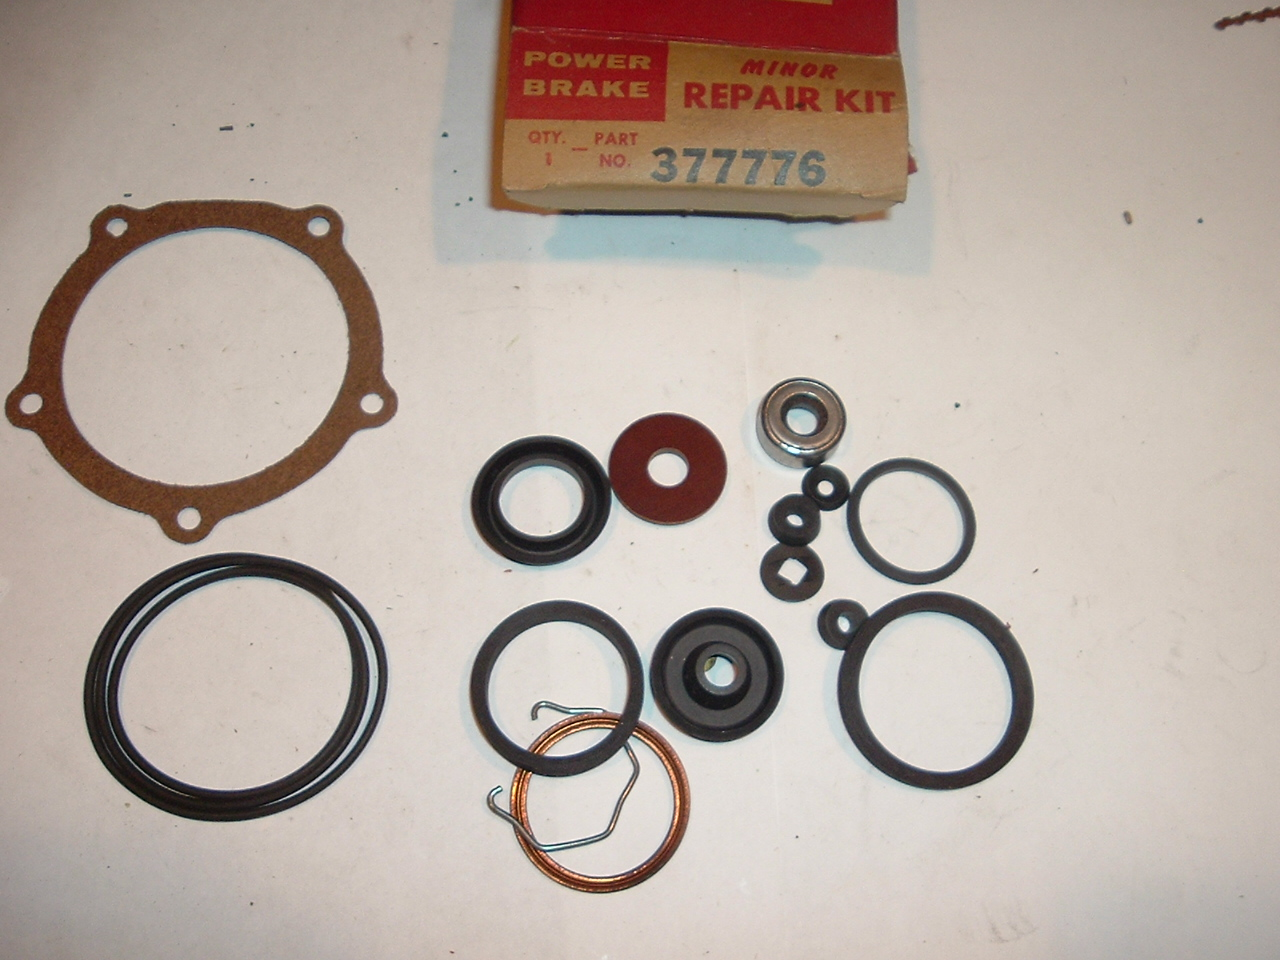 1953 1954 Cadillac power brake minor overhaul kit Bendix (a 377776)